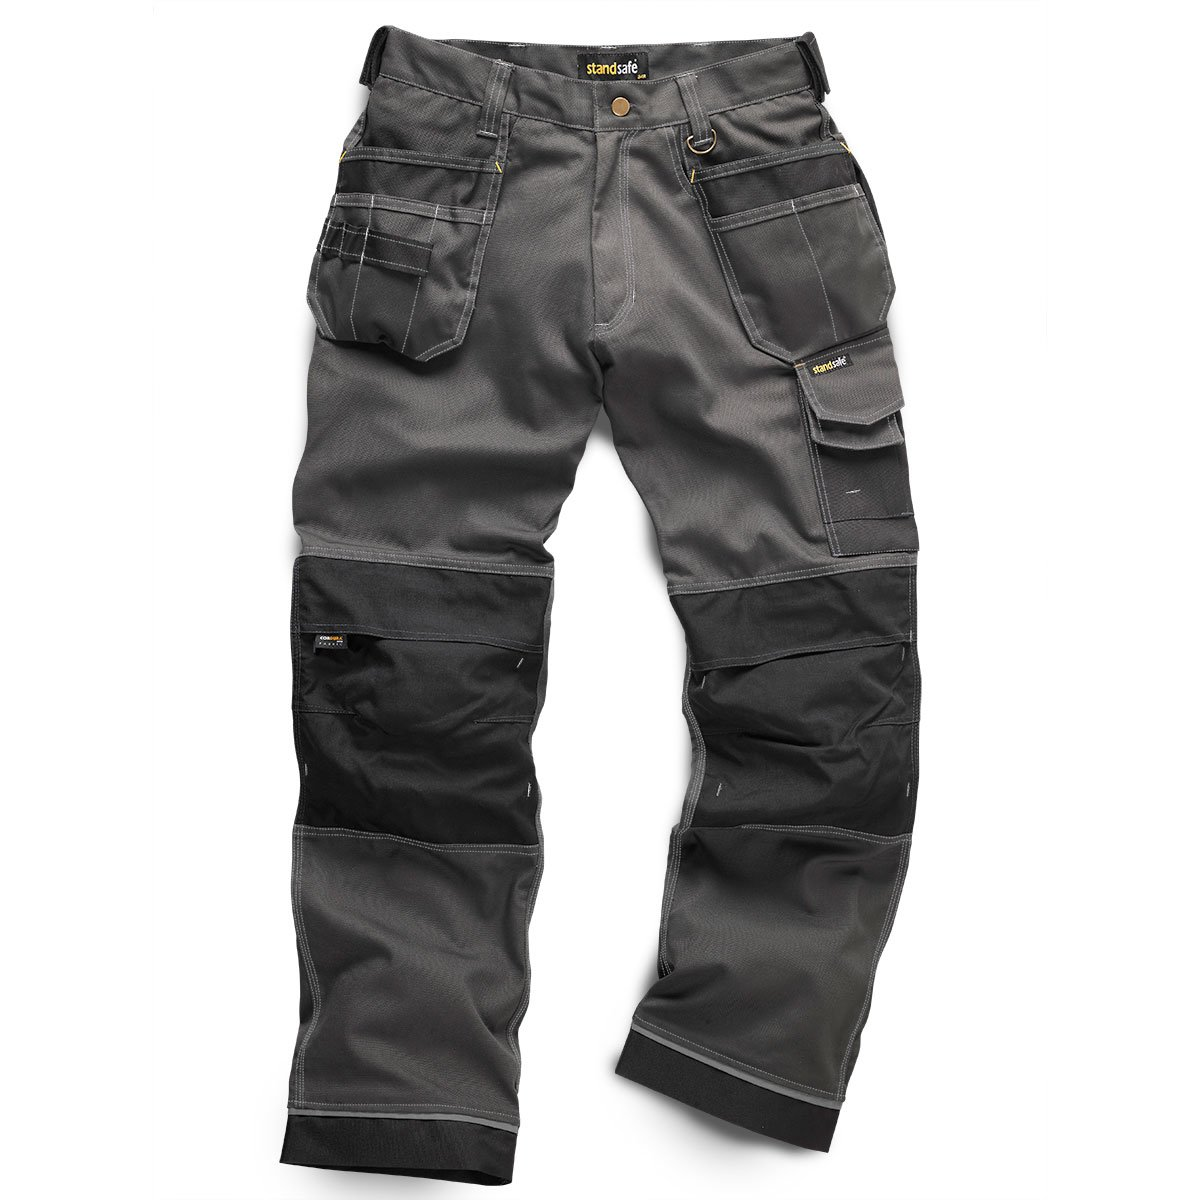 Standsafe Work Trousers (3 Pair for €60.00) >>>Special Offer<<<